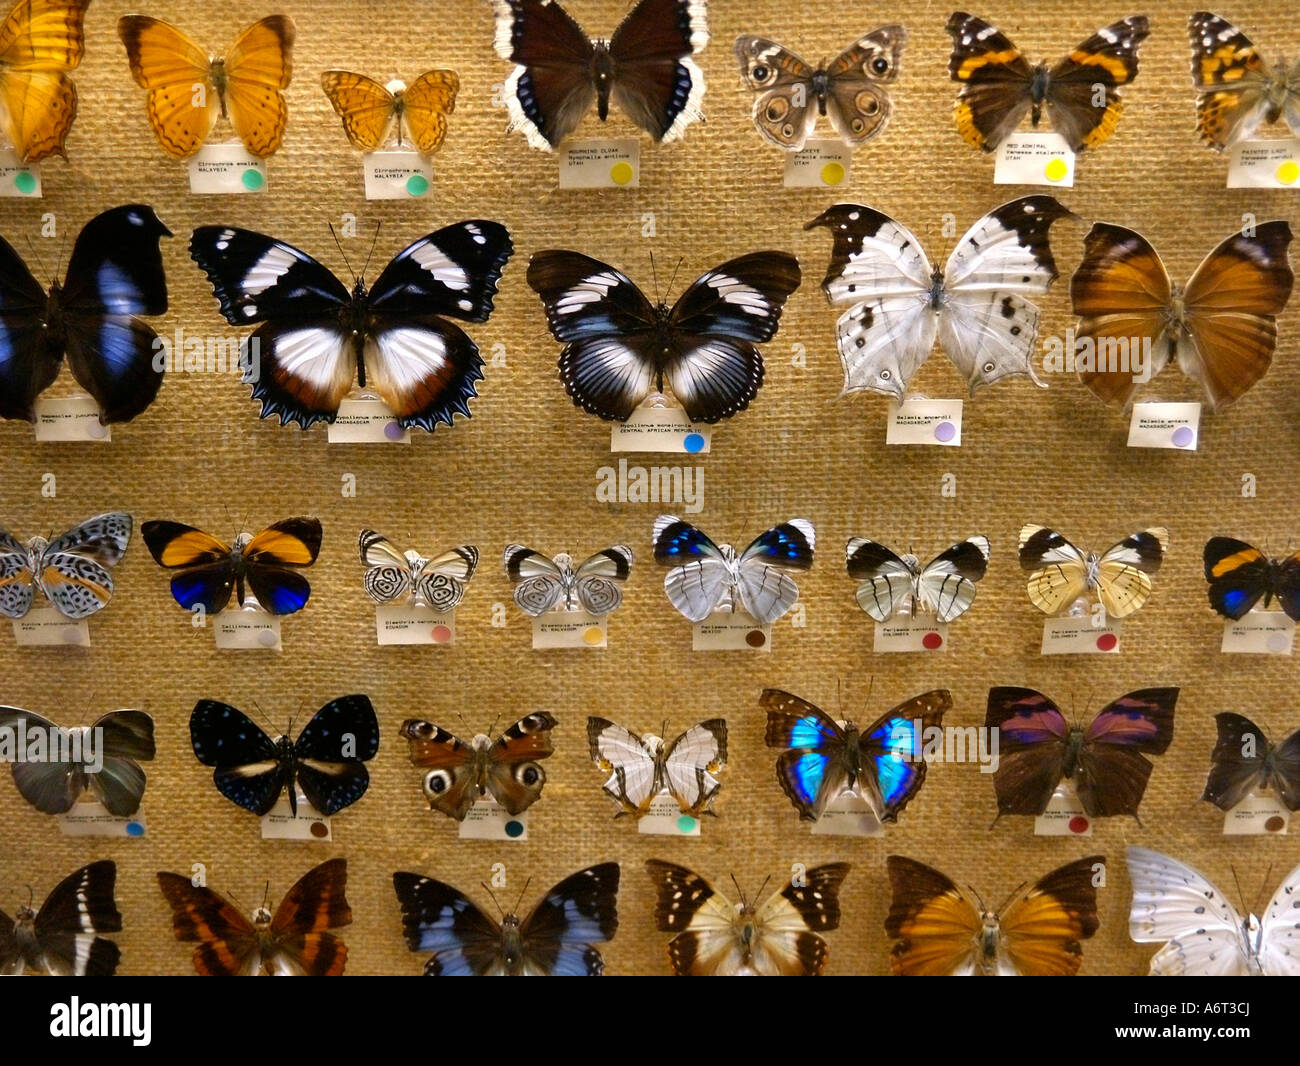 rows of preserved brilliantly colored butterflies mounted in a